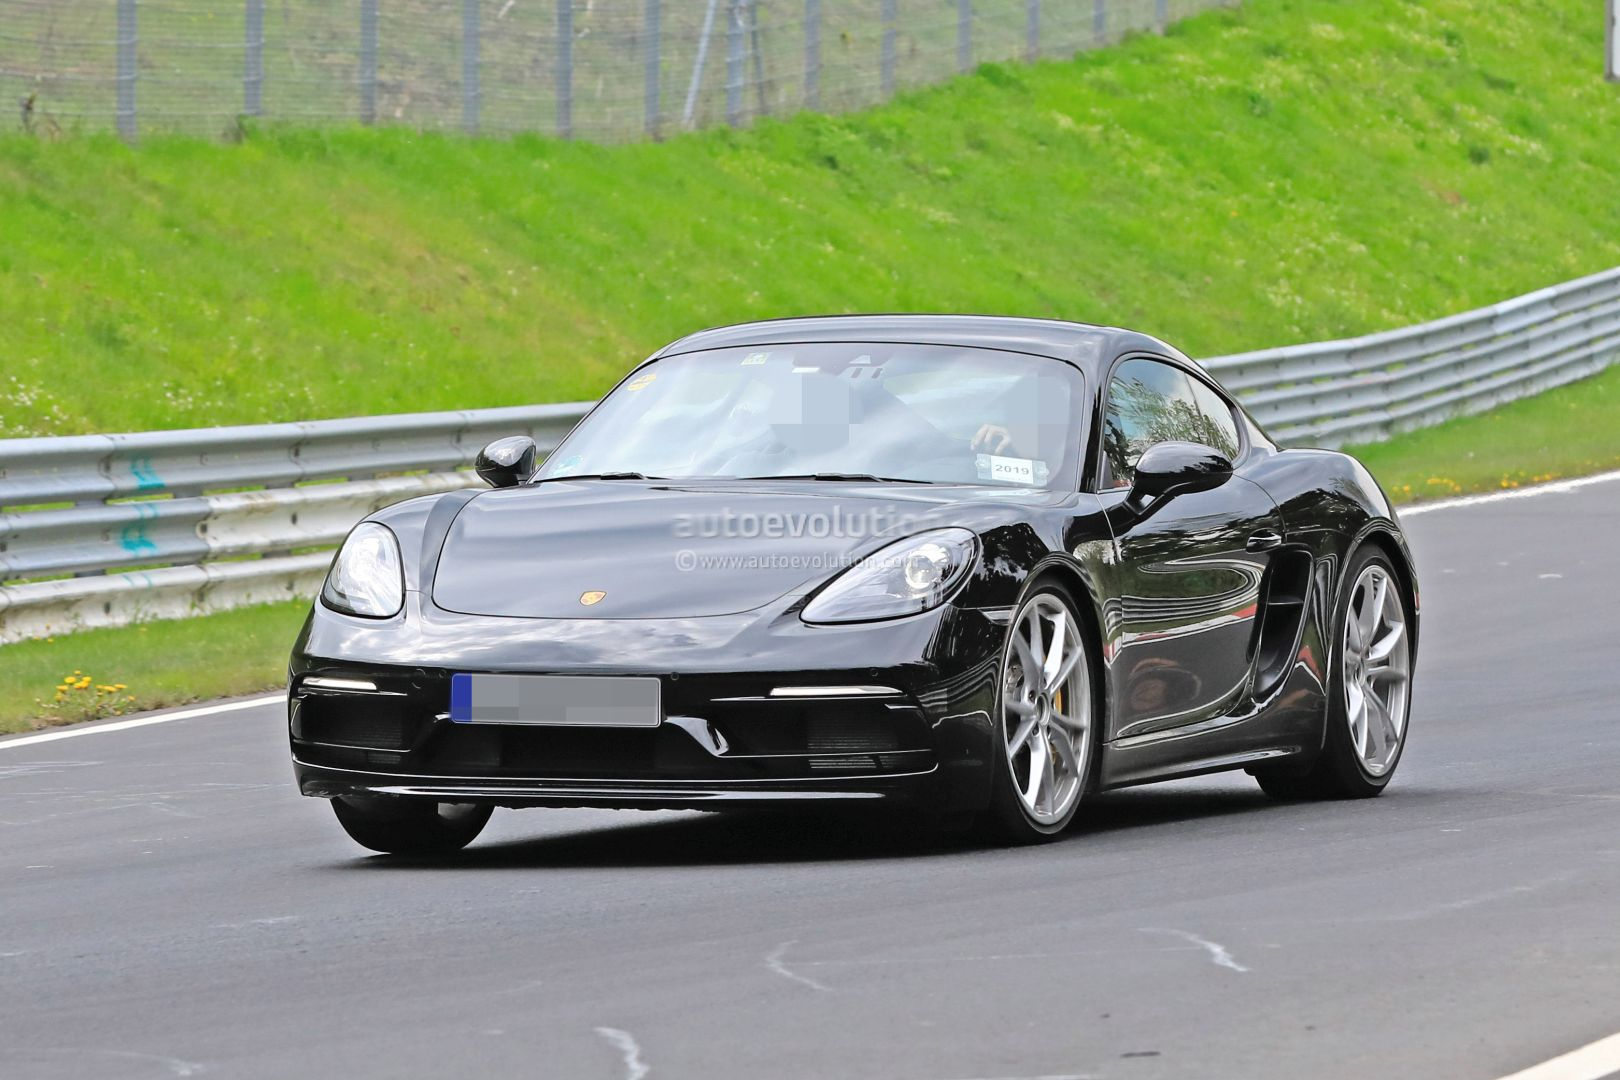 2020 Porsche 718 Cayman Boxster Spied Testing Flat Sixes Touring Pack Rumored Autoevolution